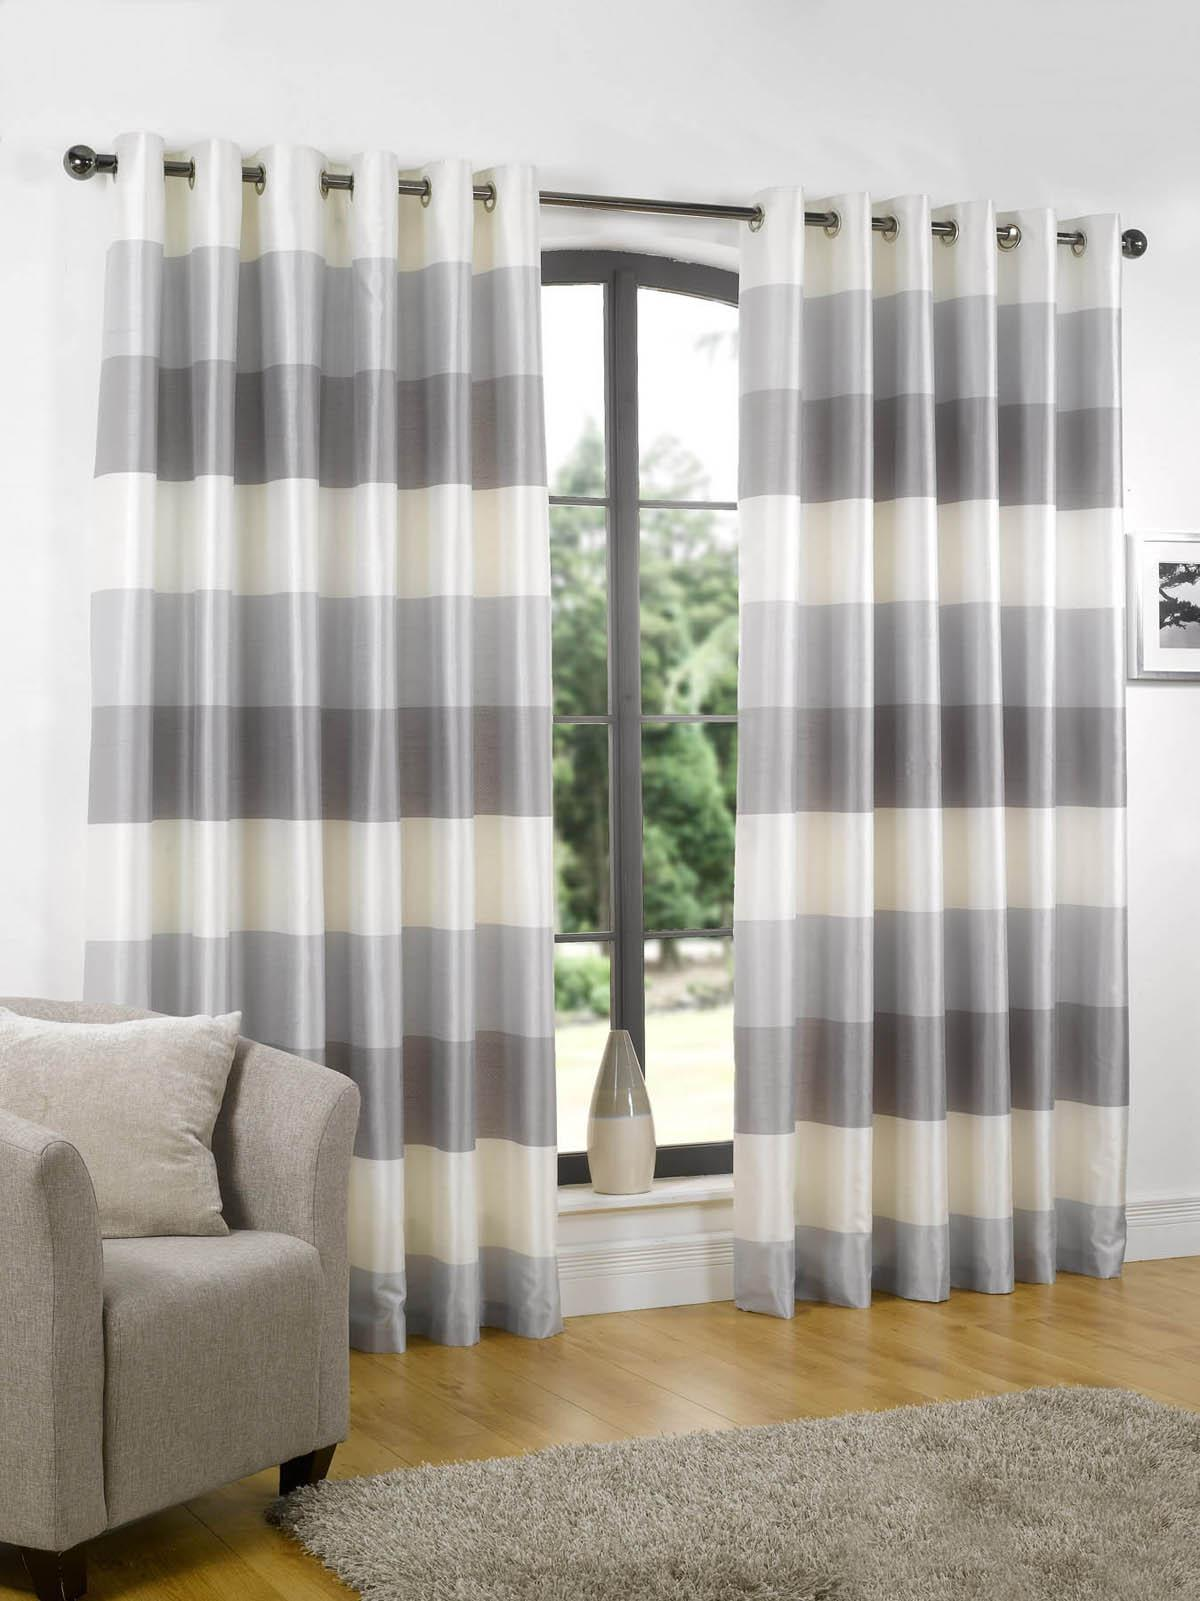 Cheap grey curtains - Cheap Grey Curtains Rio Ready Made Eyelet Lined Curtains